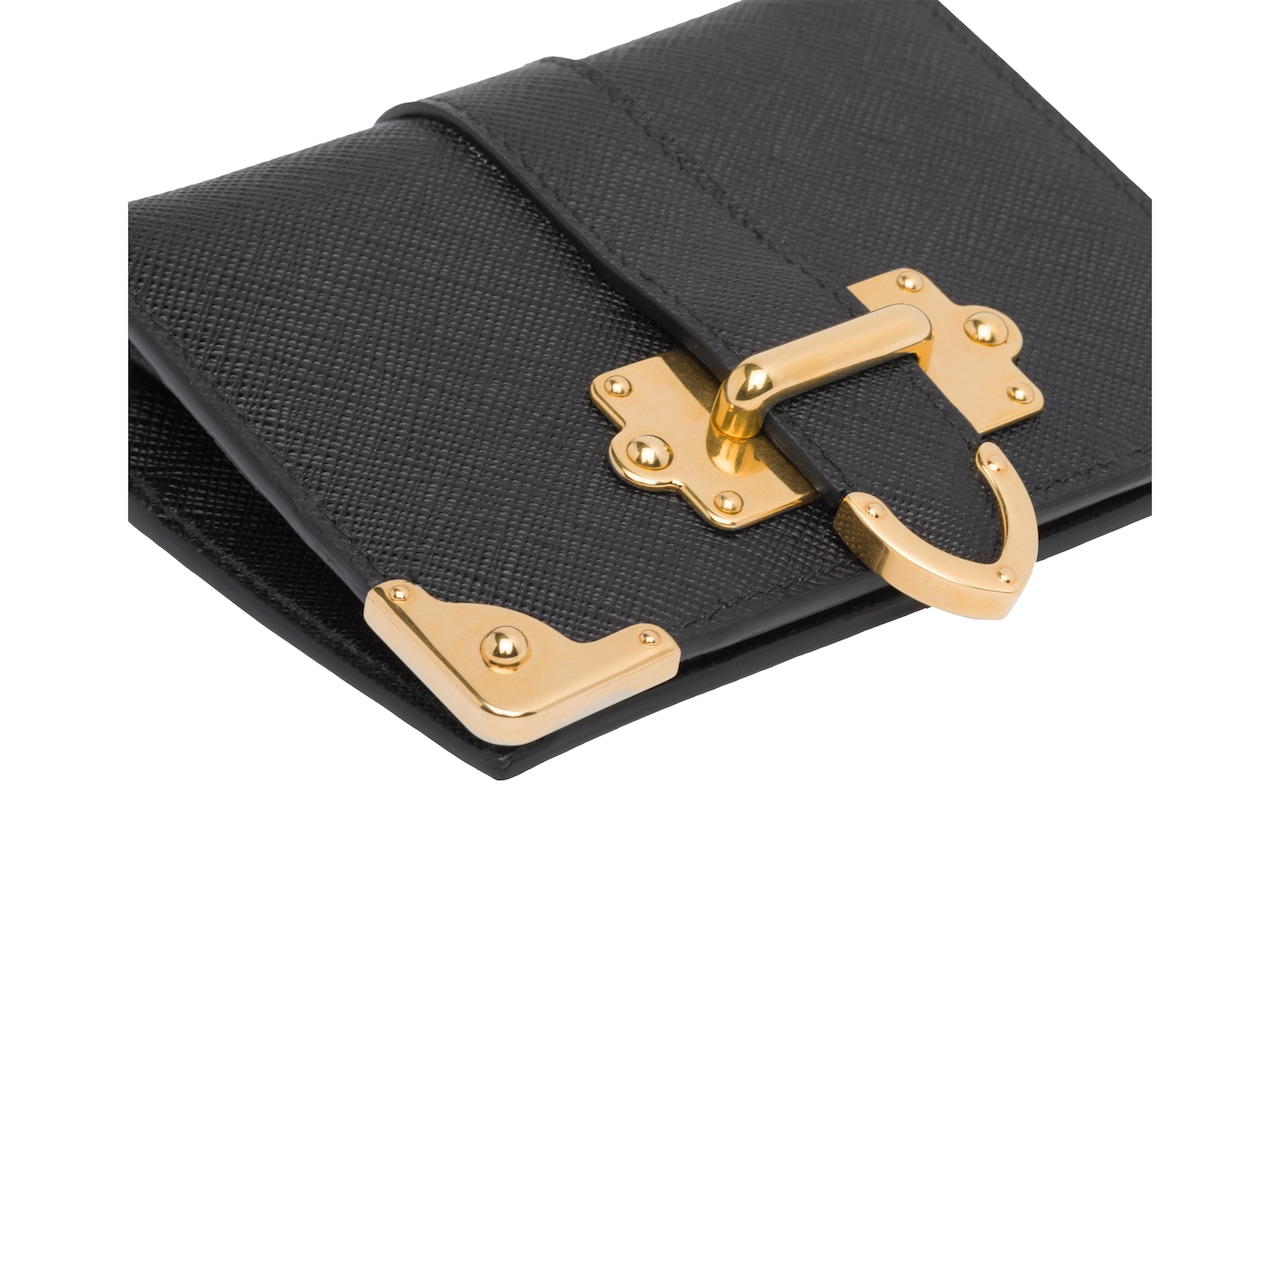 Small Prada Cahier Saffiano leather wallet